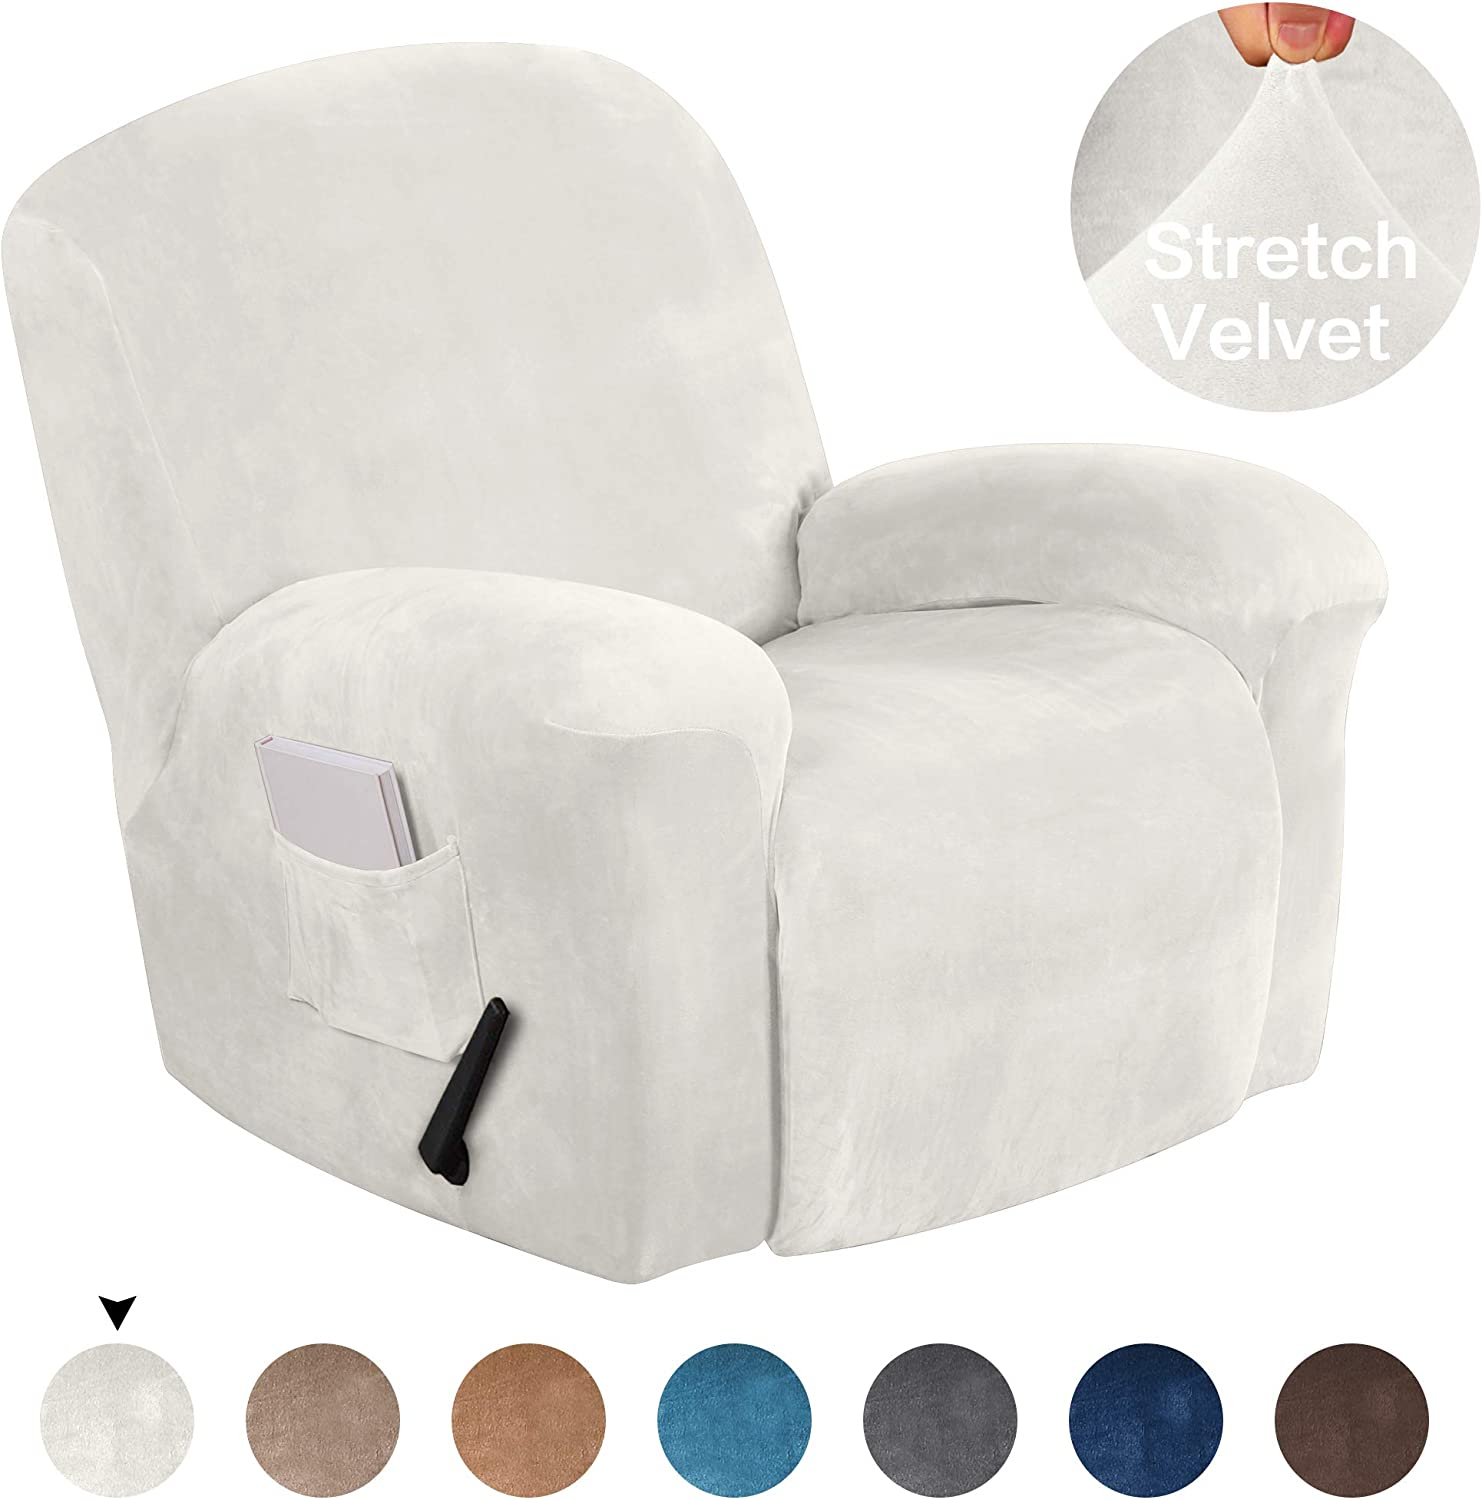 Turquoize Stretch Recliner Covers Stretch Recliner Slipcovers Velvet Recliner Chair Cover for Large Recliner Furniture Protector with Elastic Bottom 1 Piece with Side Pocket (Recliner, Ivory)